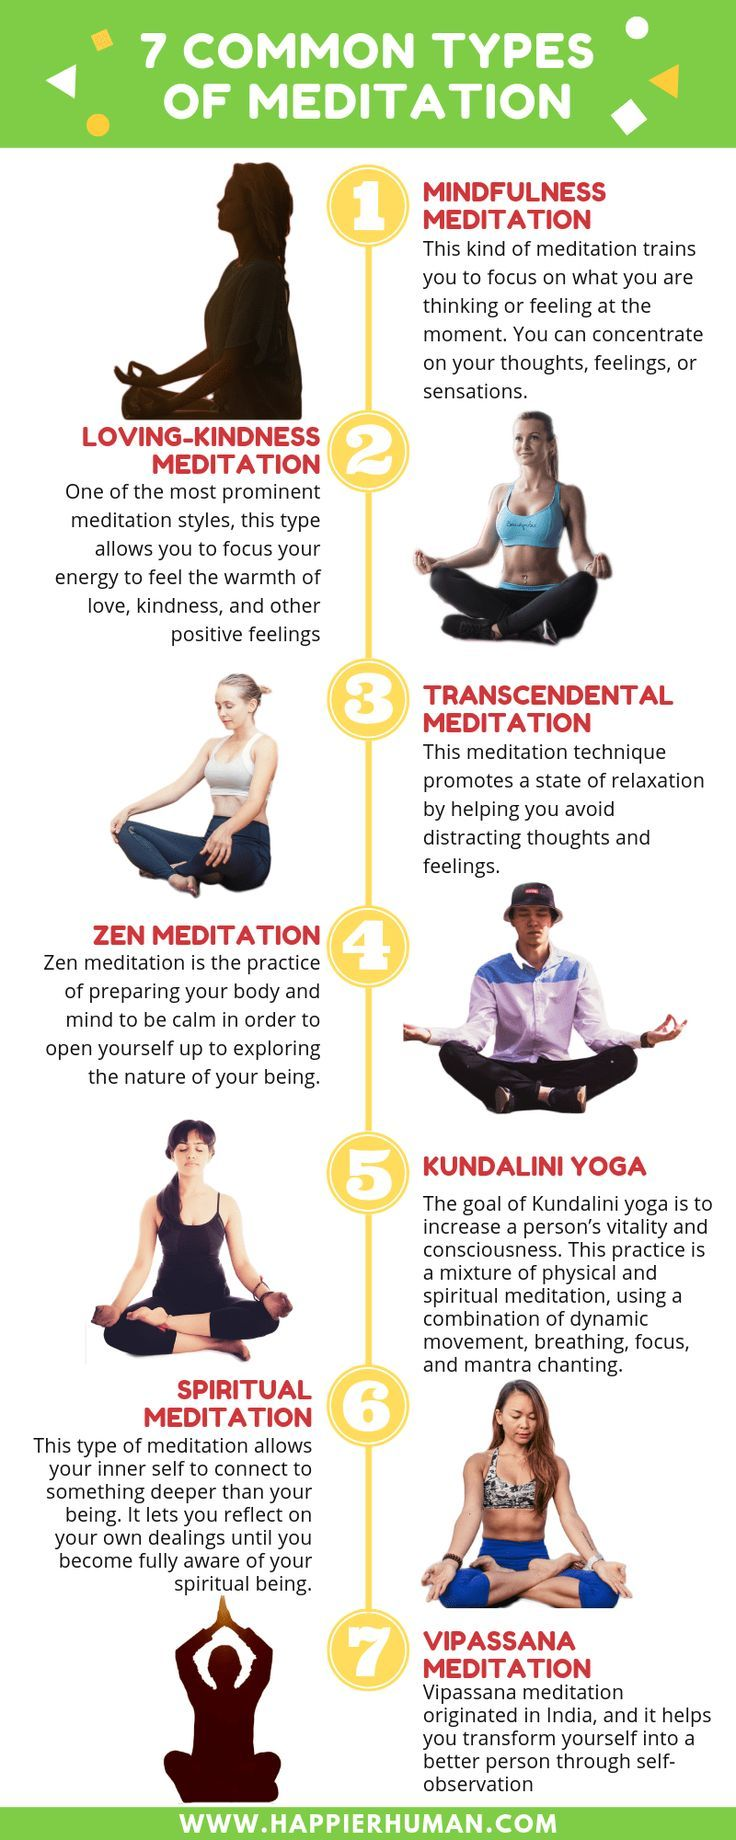 There are many kinds of meditation, but here are the most popular and widely use...